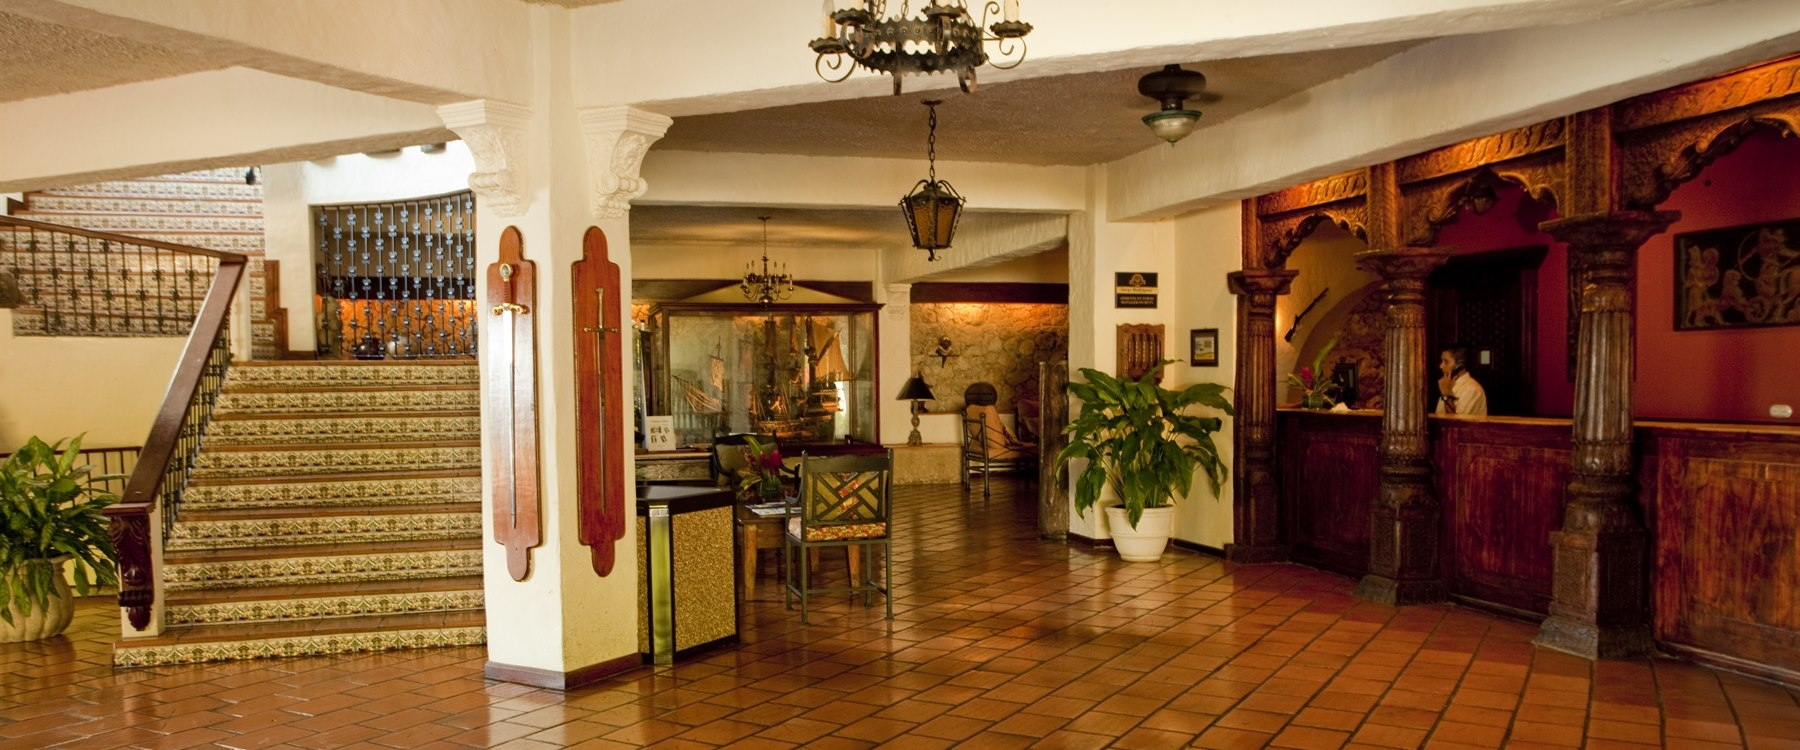 Lobby area at Parador Resort & Spa